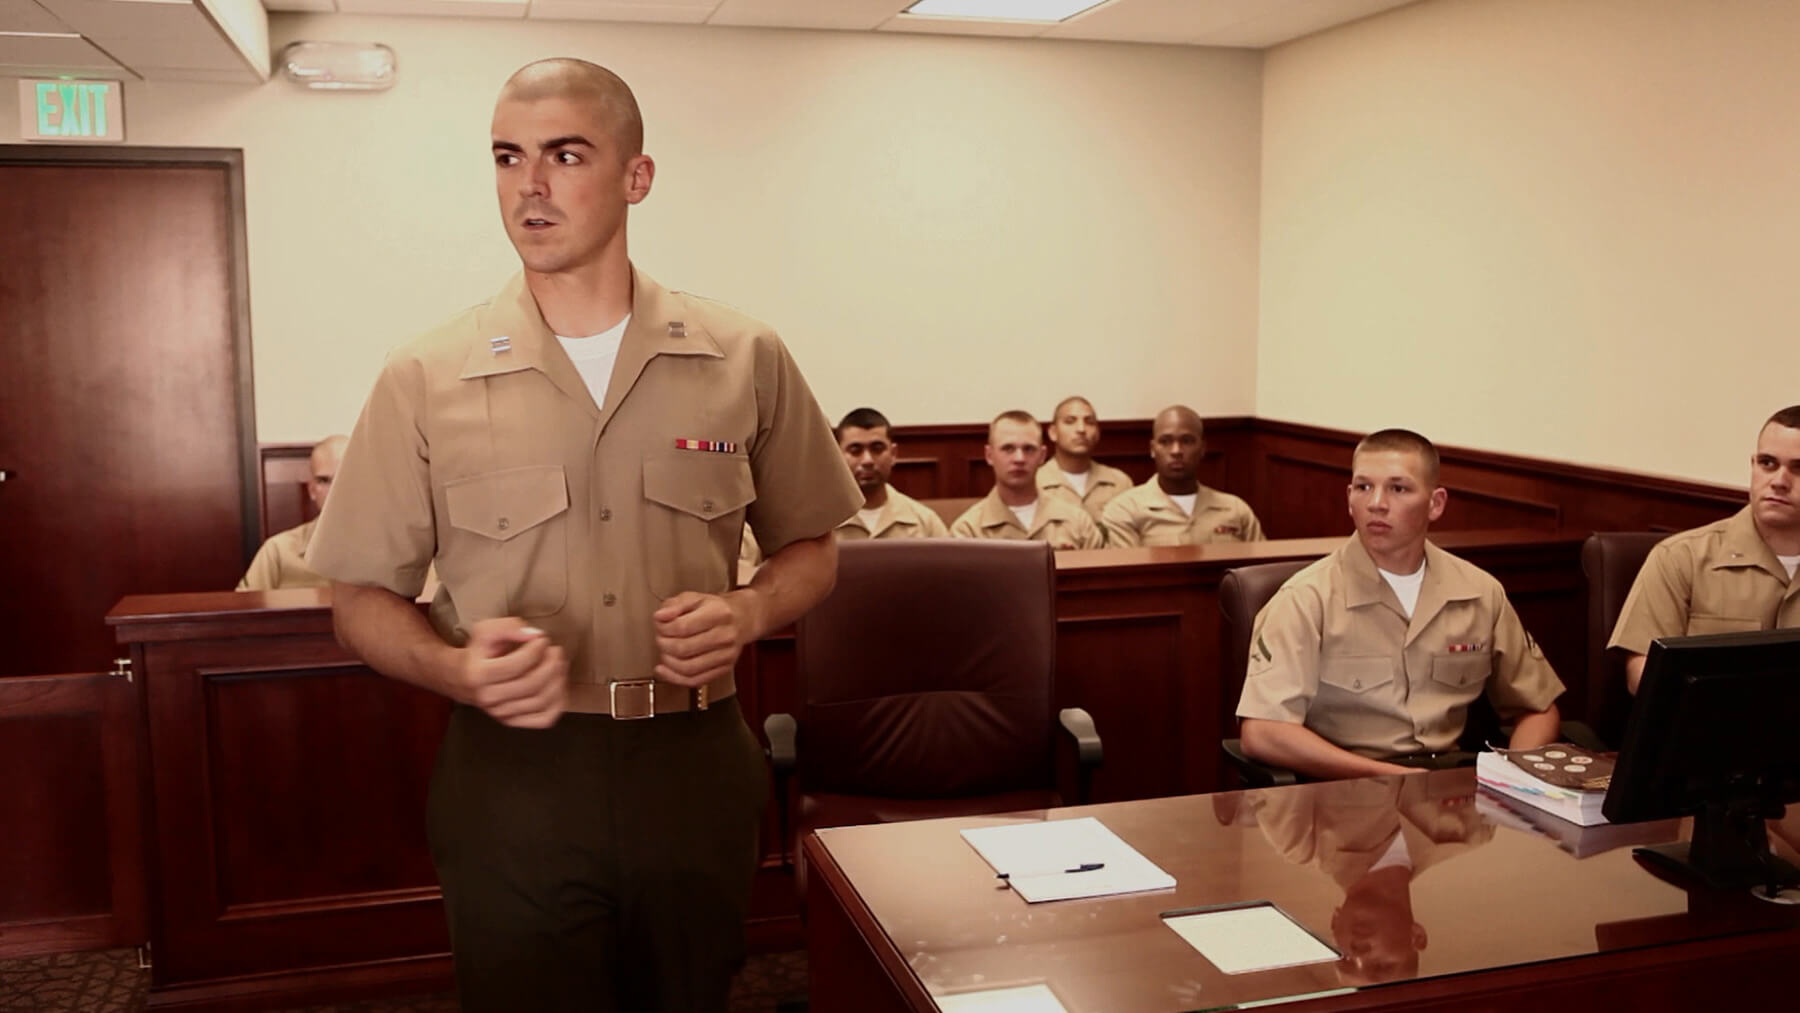 Long form video highlighting the Marine Corps Judge Advocate Program.